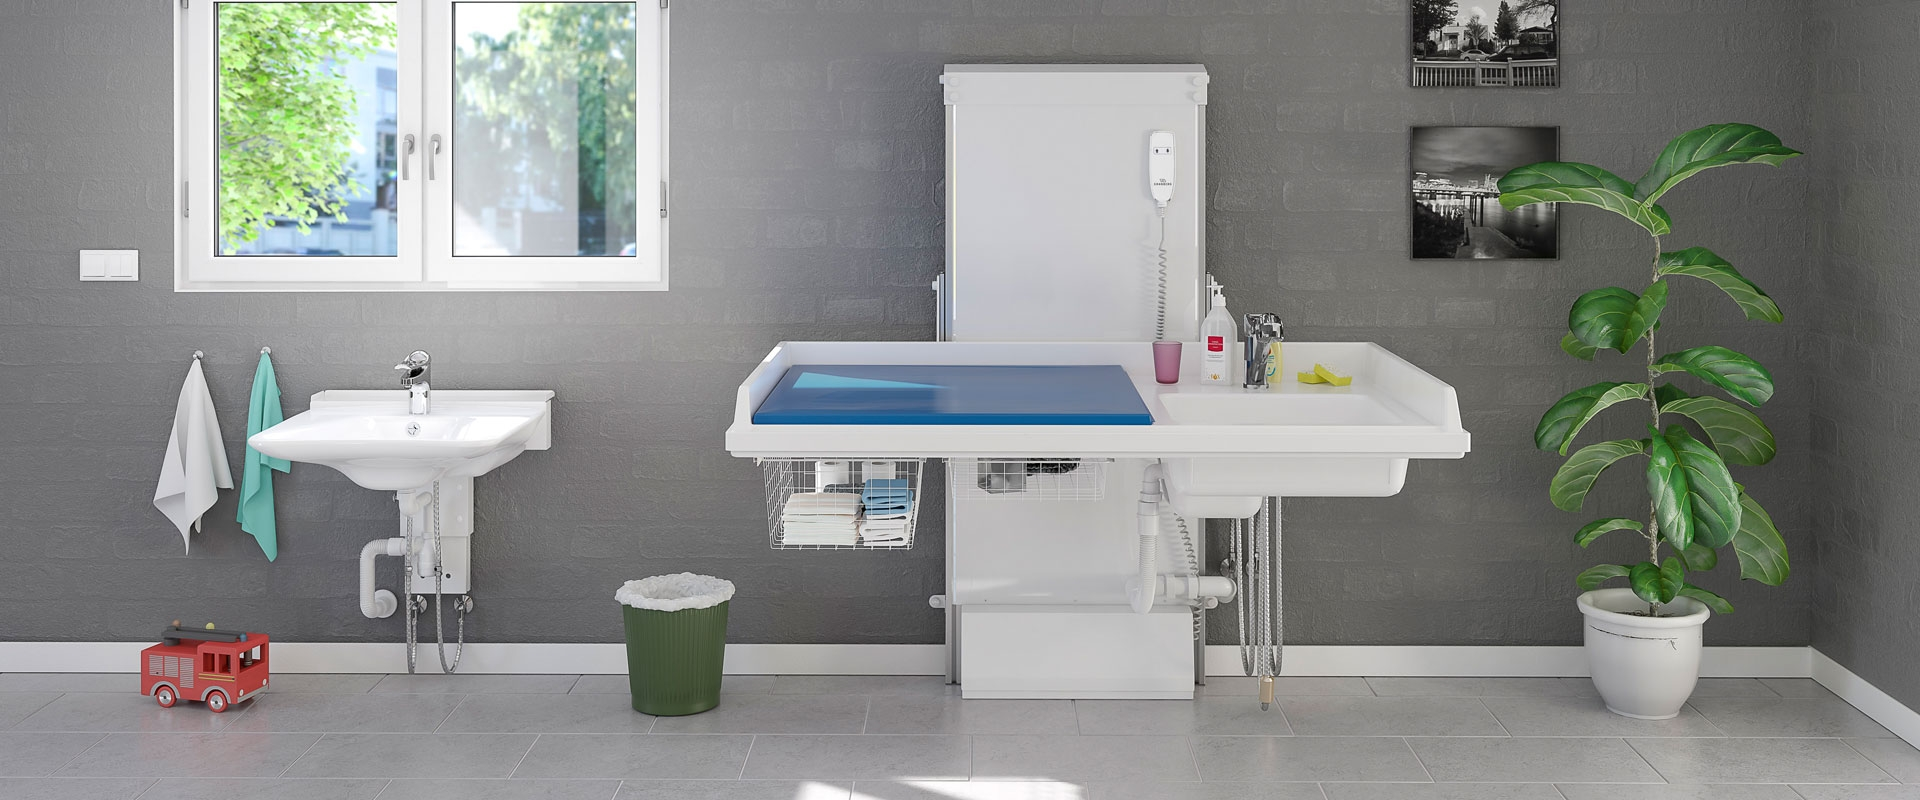 Baby changing table 334 - laundry sink